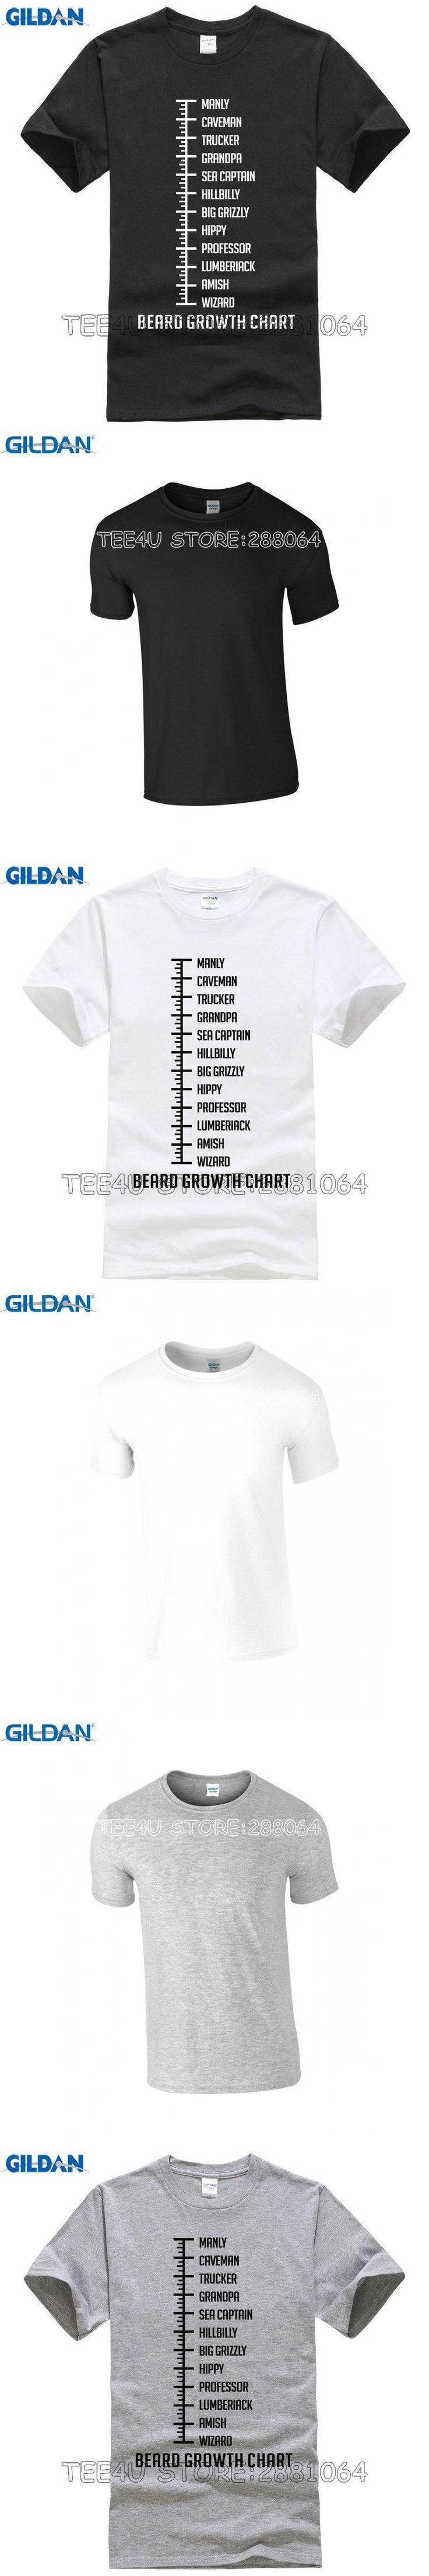 Tee4U Personalised T Shirts Men'S Short Funny Crew Neck Beard Growth Chart Manly T Shirt